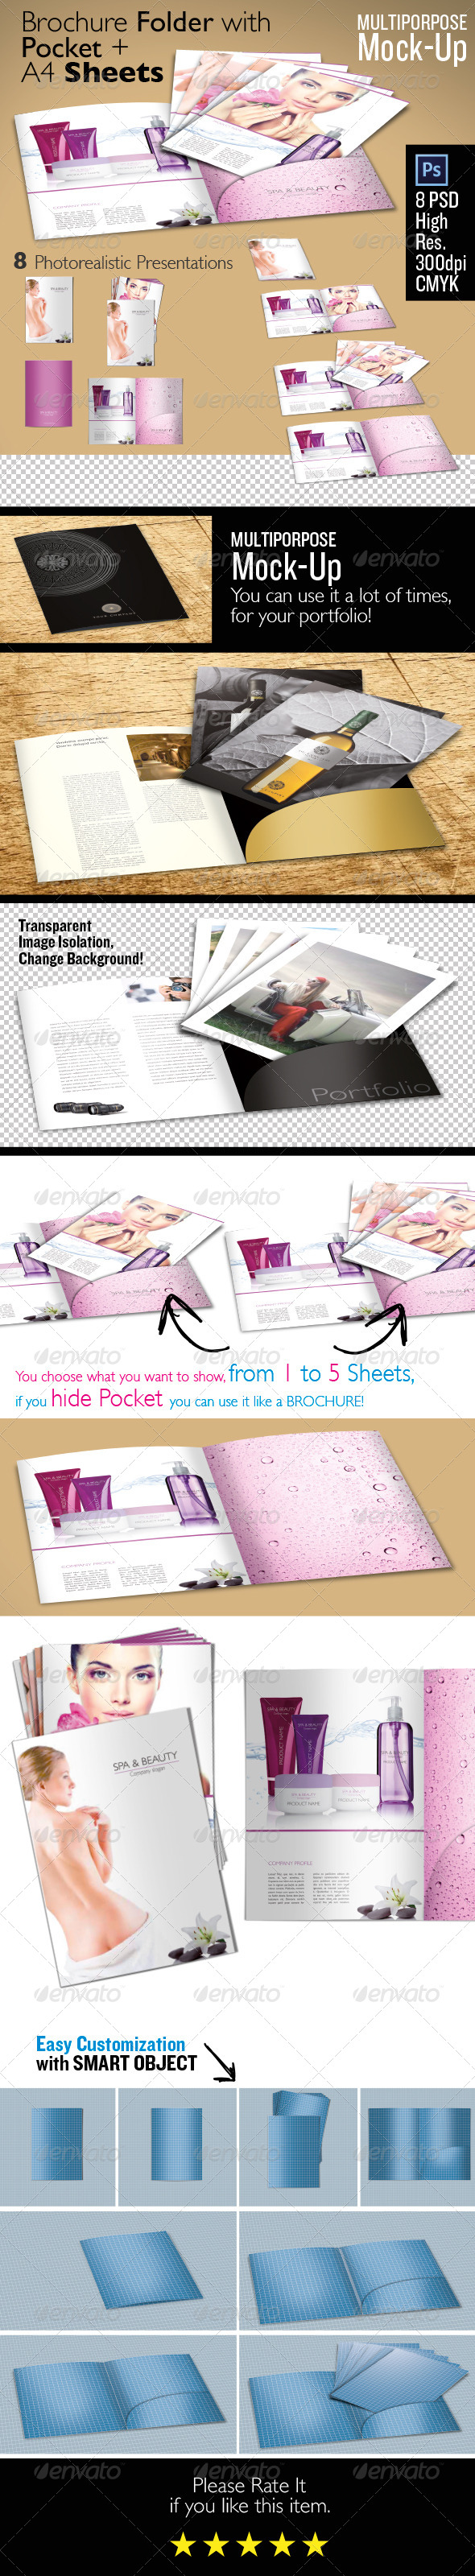 GraphicRiver Brochure Folder with Pocket & Sheets Mock Up 5956091